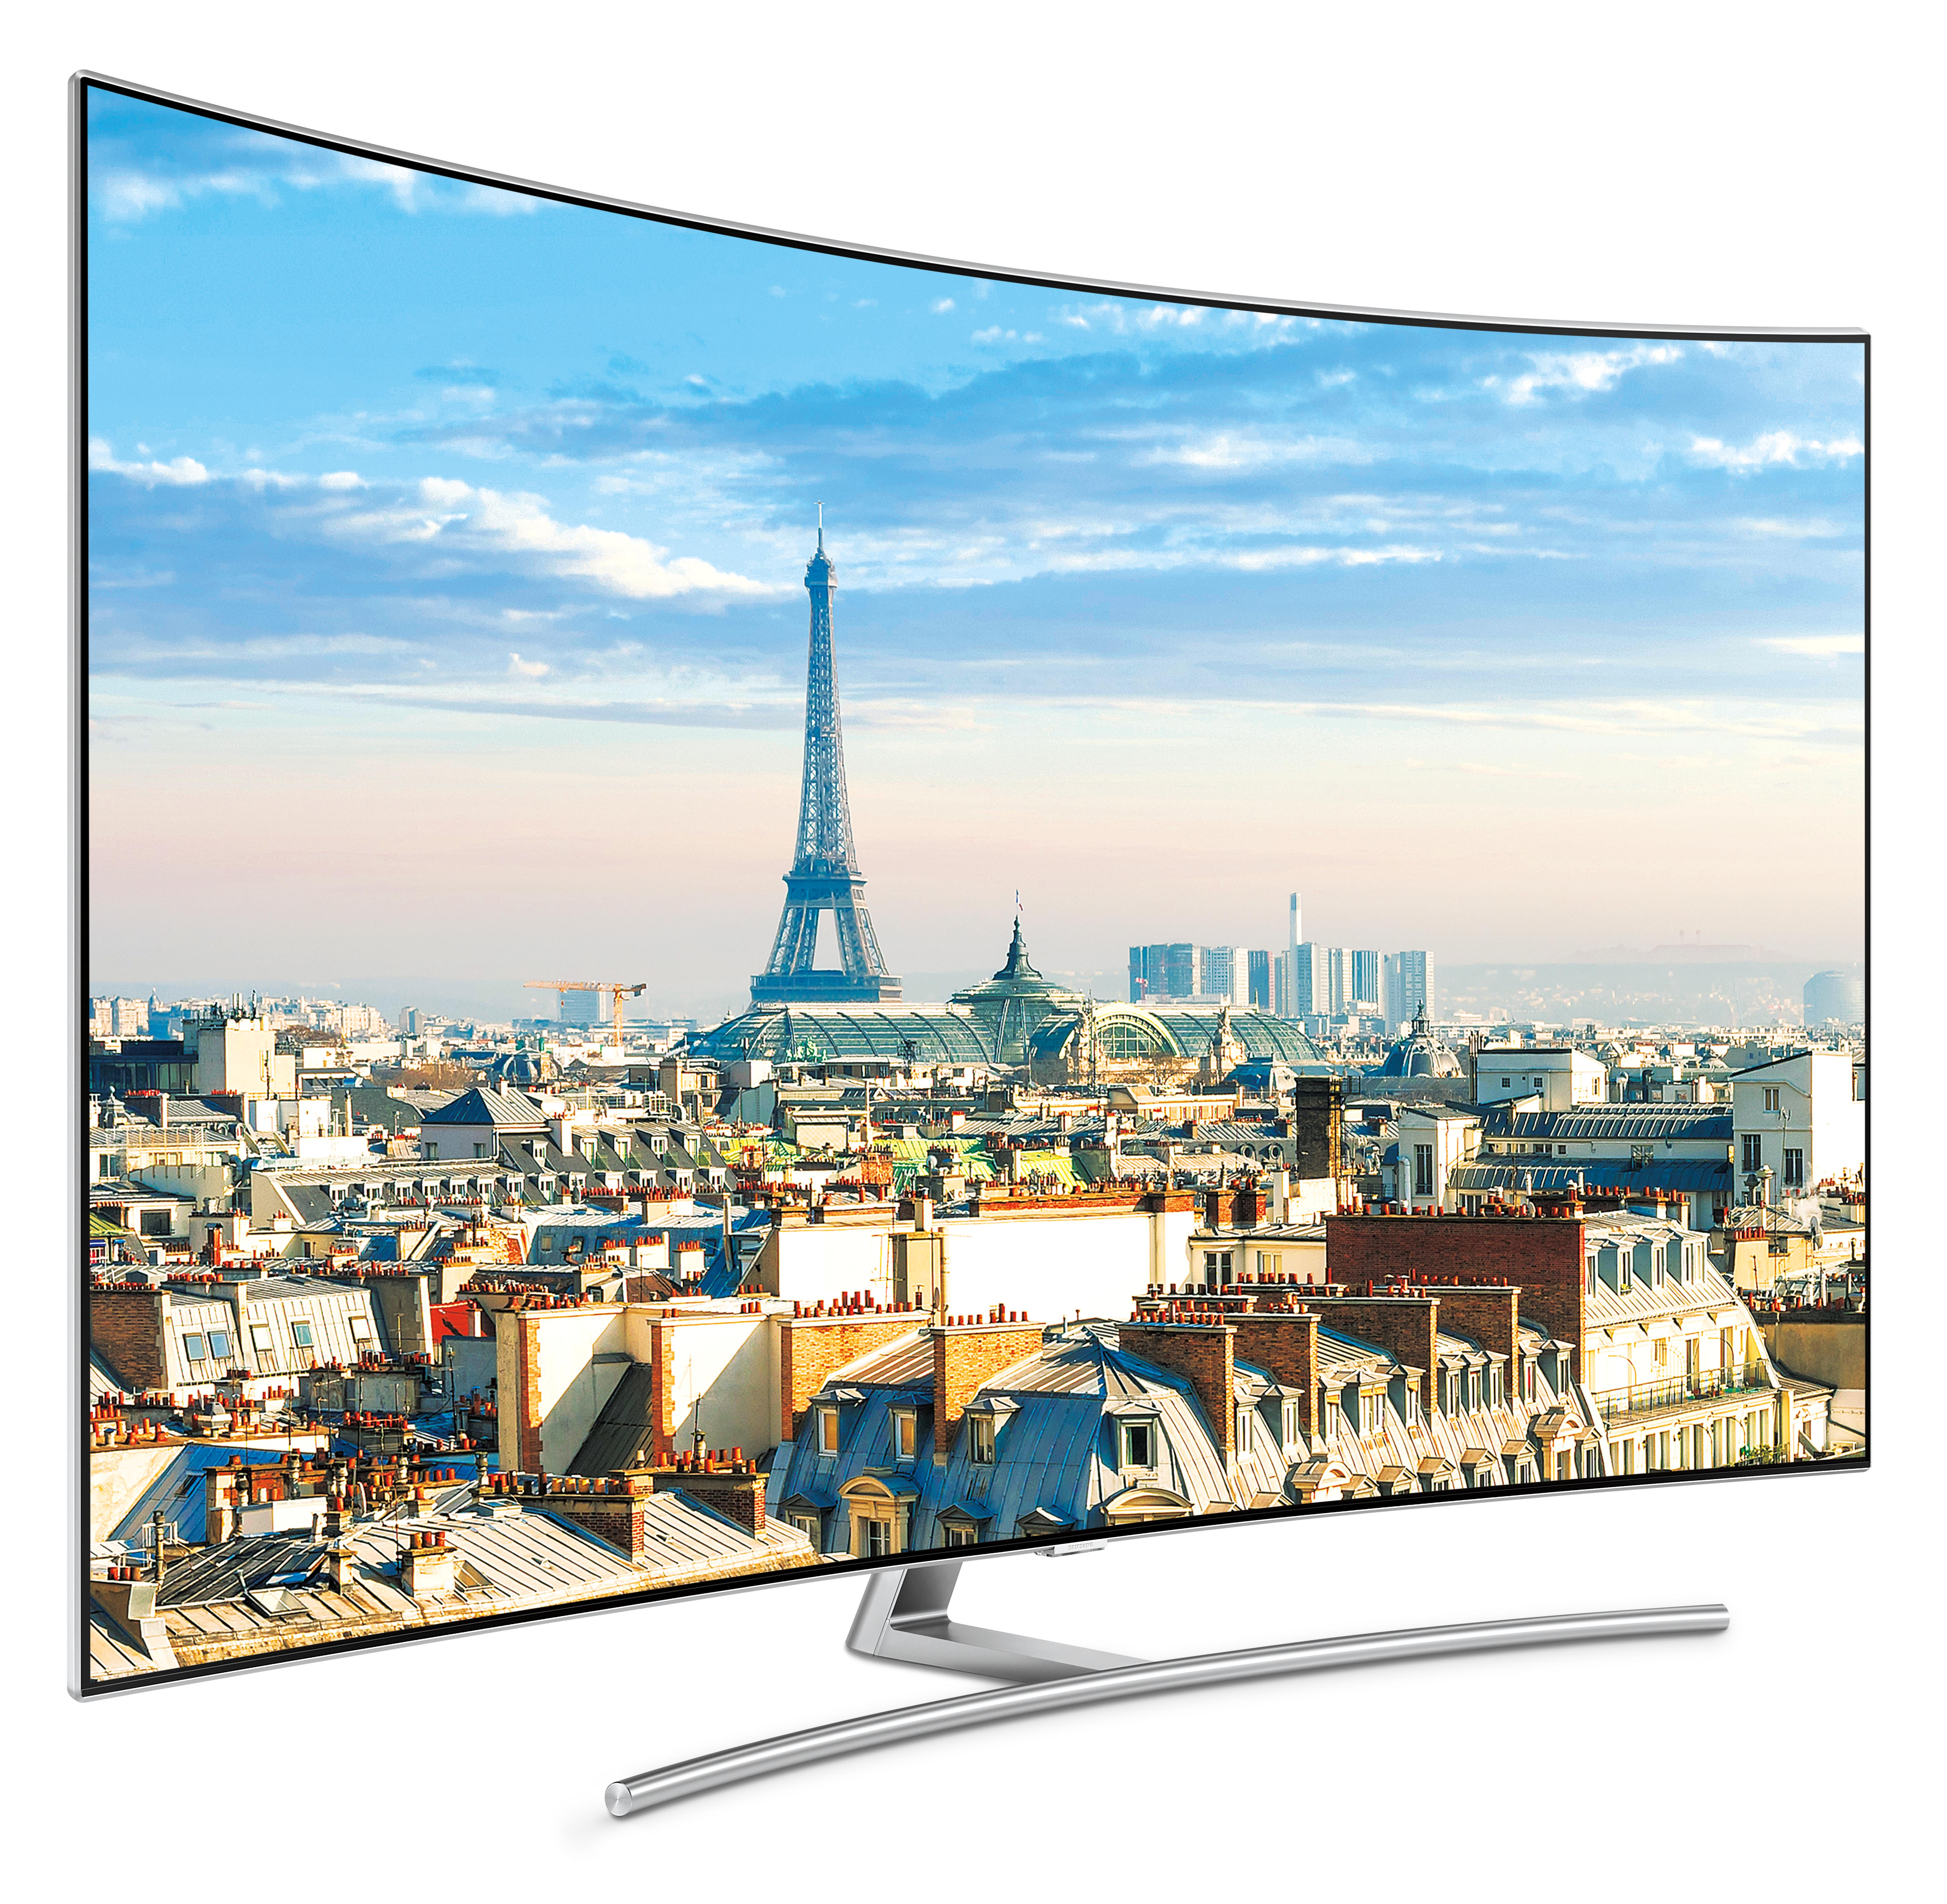 Samsung Redefines Tv Picture Design With The Launch Of Qled Tvs In Led Ua32fh4003 Newly Announced Takes Quantum Dot Technology To Next Level Advancements Light Efficiency Stability And A Wider Colour Spectrum